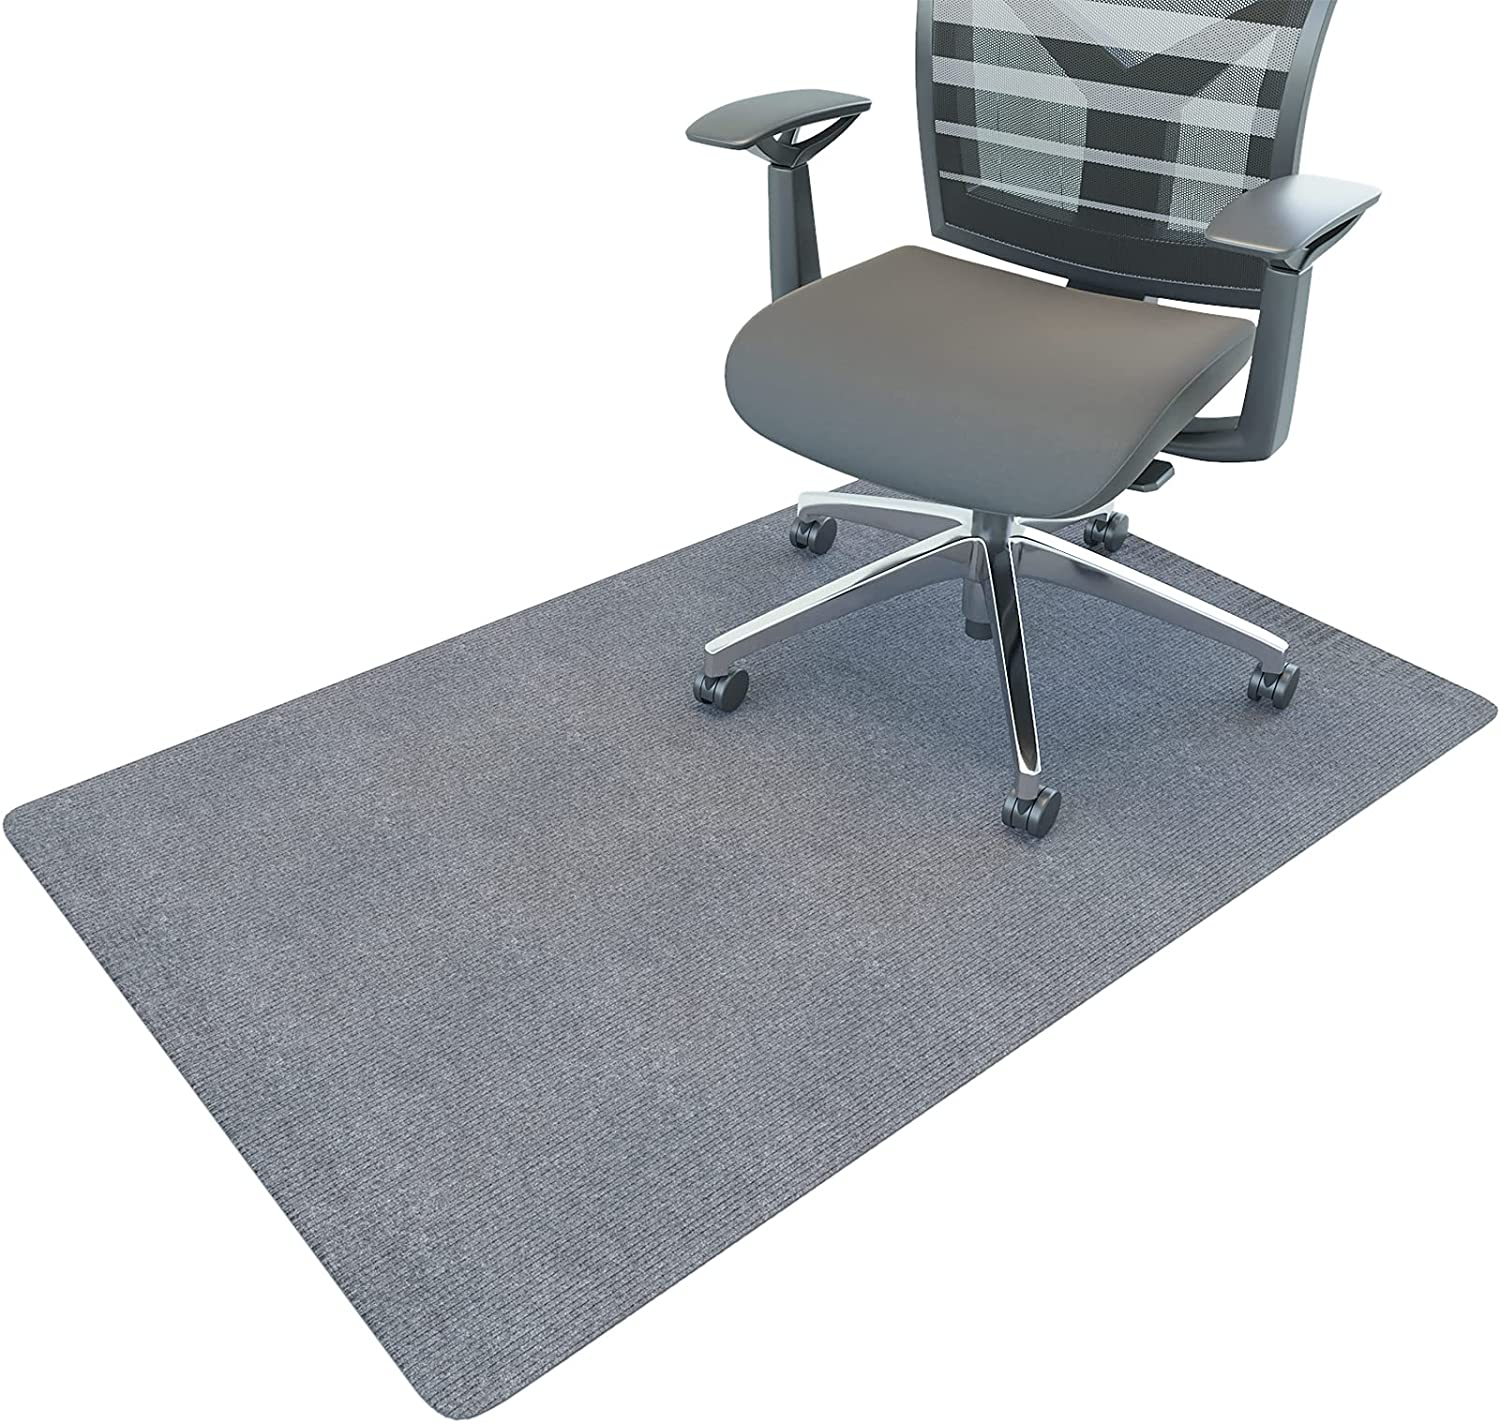 Max 67% OFF Office Chair Columbus Mall Mat Hard for Floor